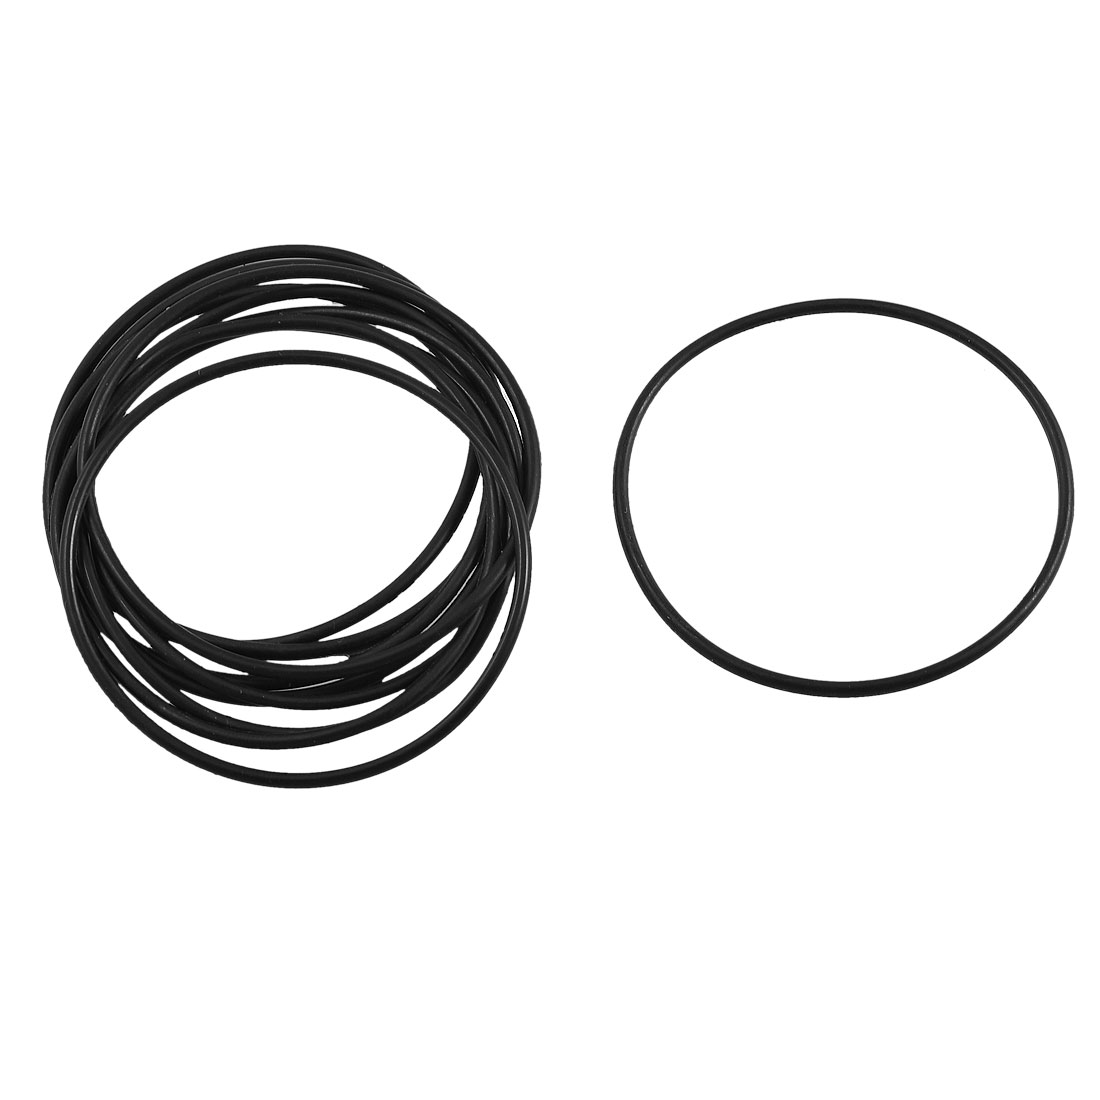 10 Pcs Black Rubber Circular Oil Seal O Ring Gaskets 50mm x 1.8mm